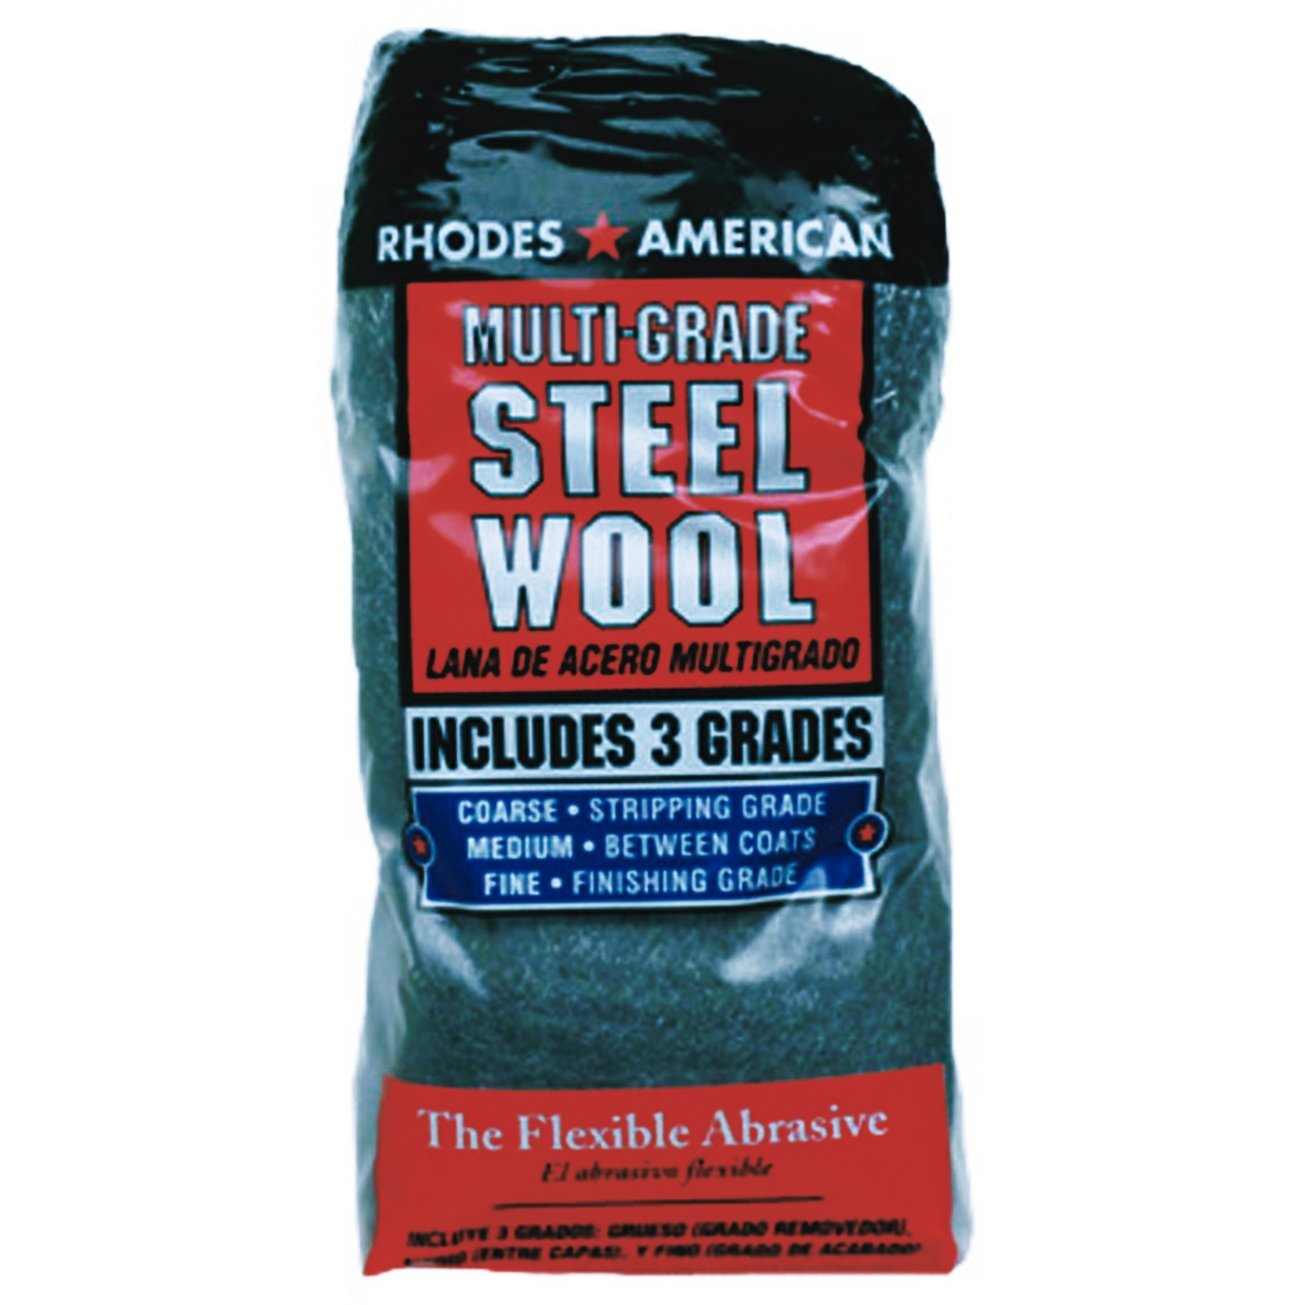 Steel wool 12 pack duracell phone charger